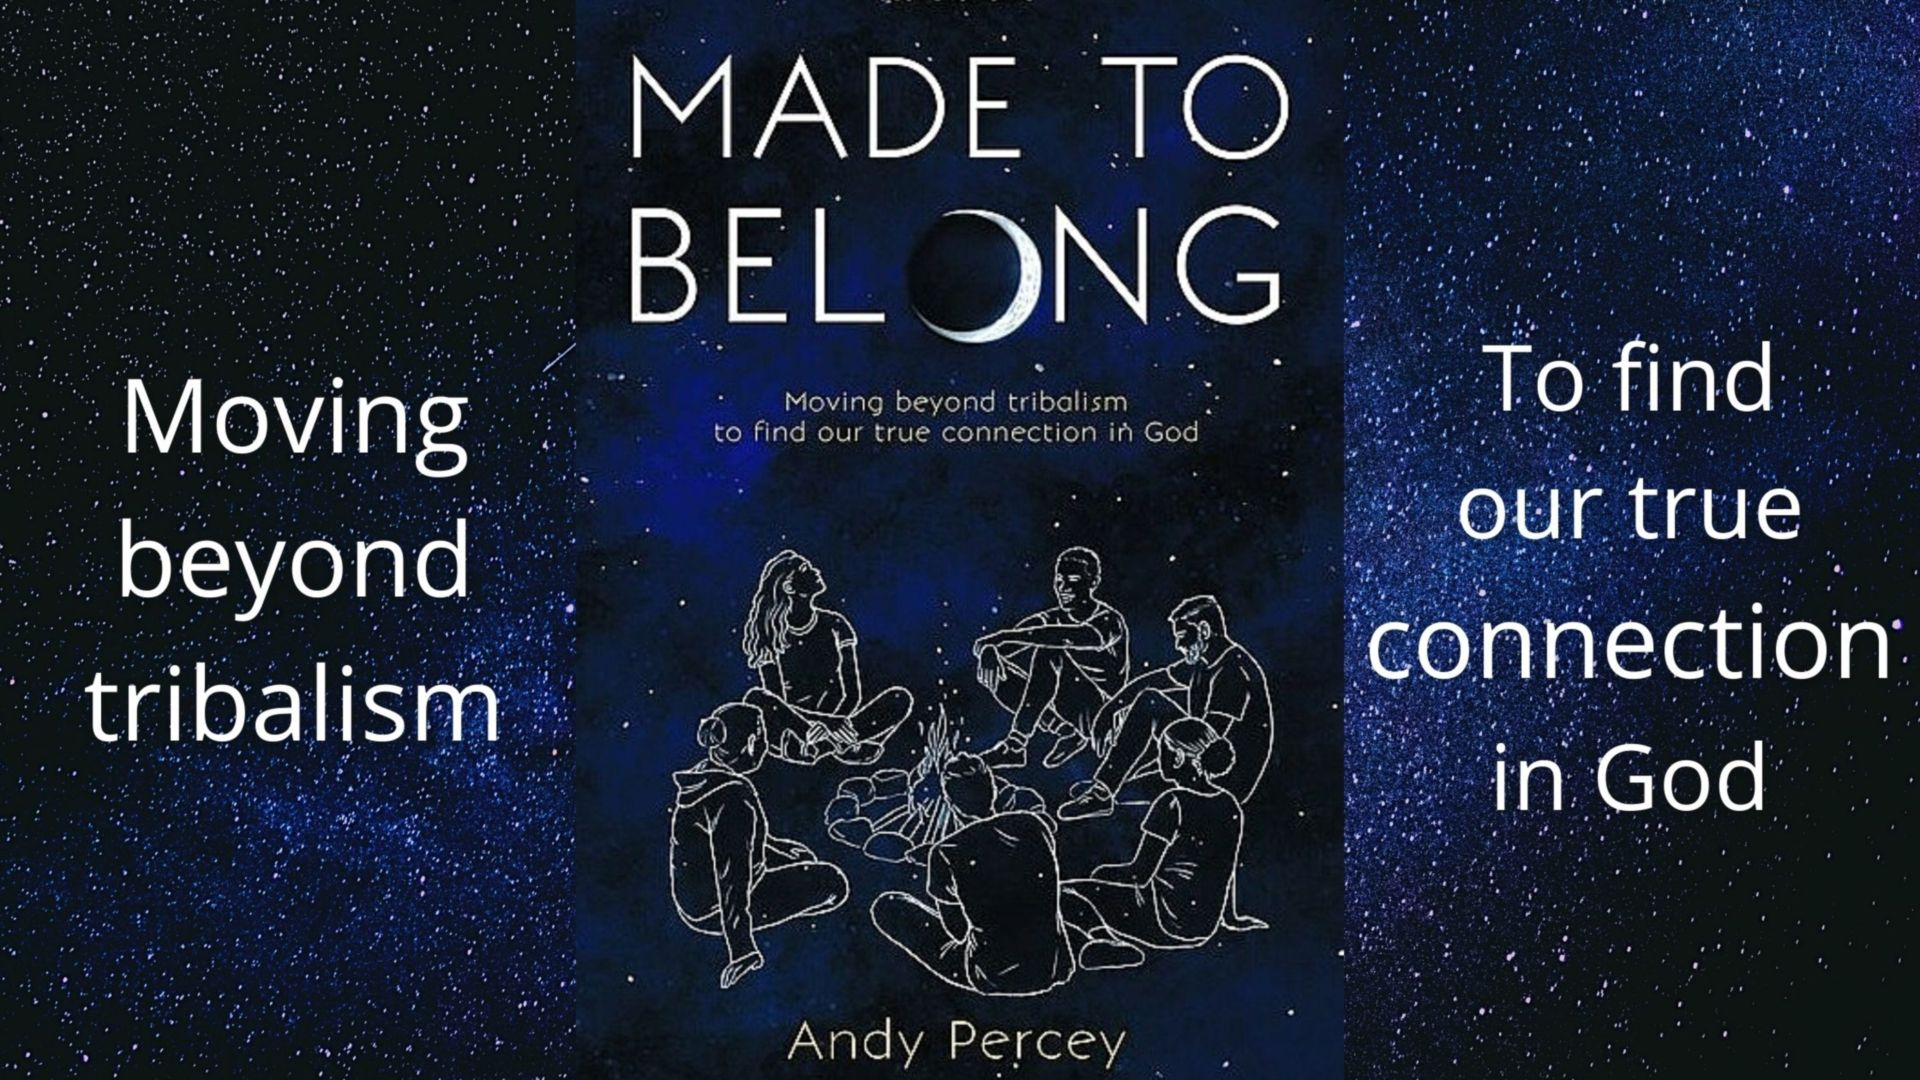 Made to Belong, a new book by Andy Percey